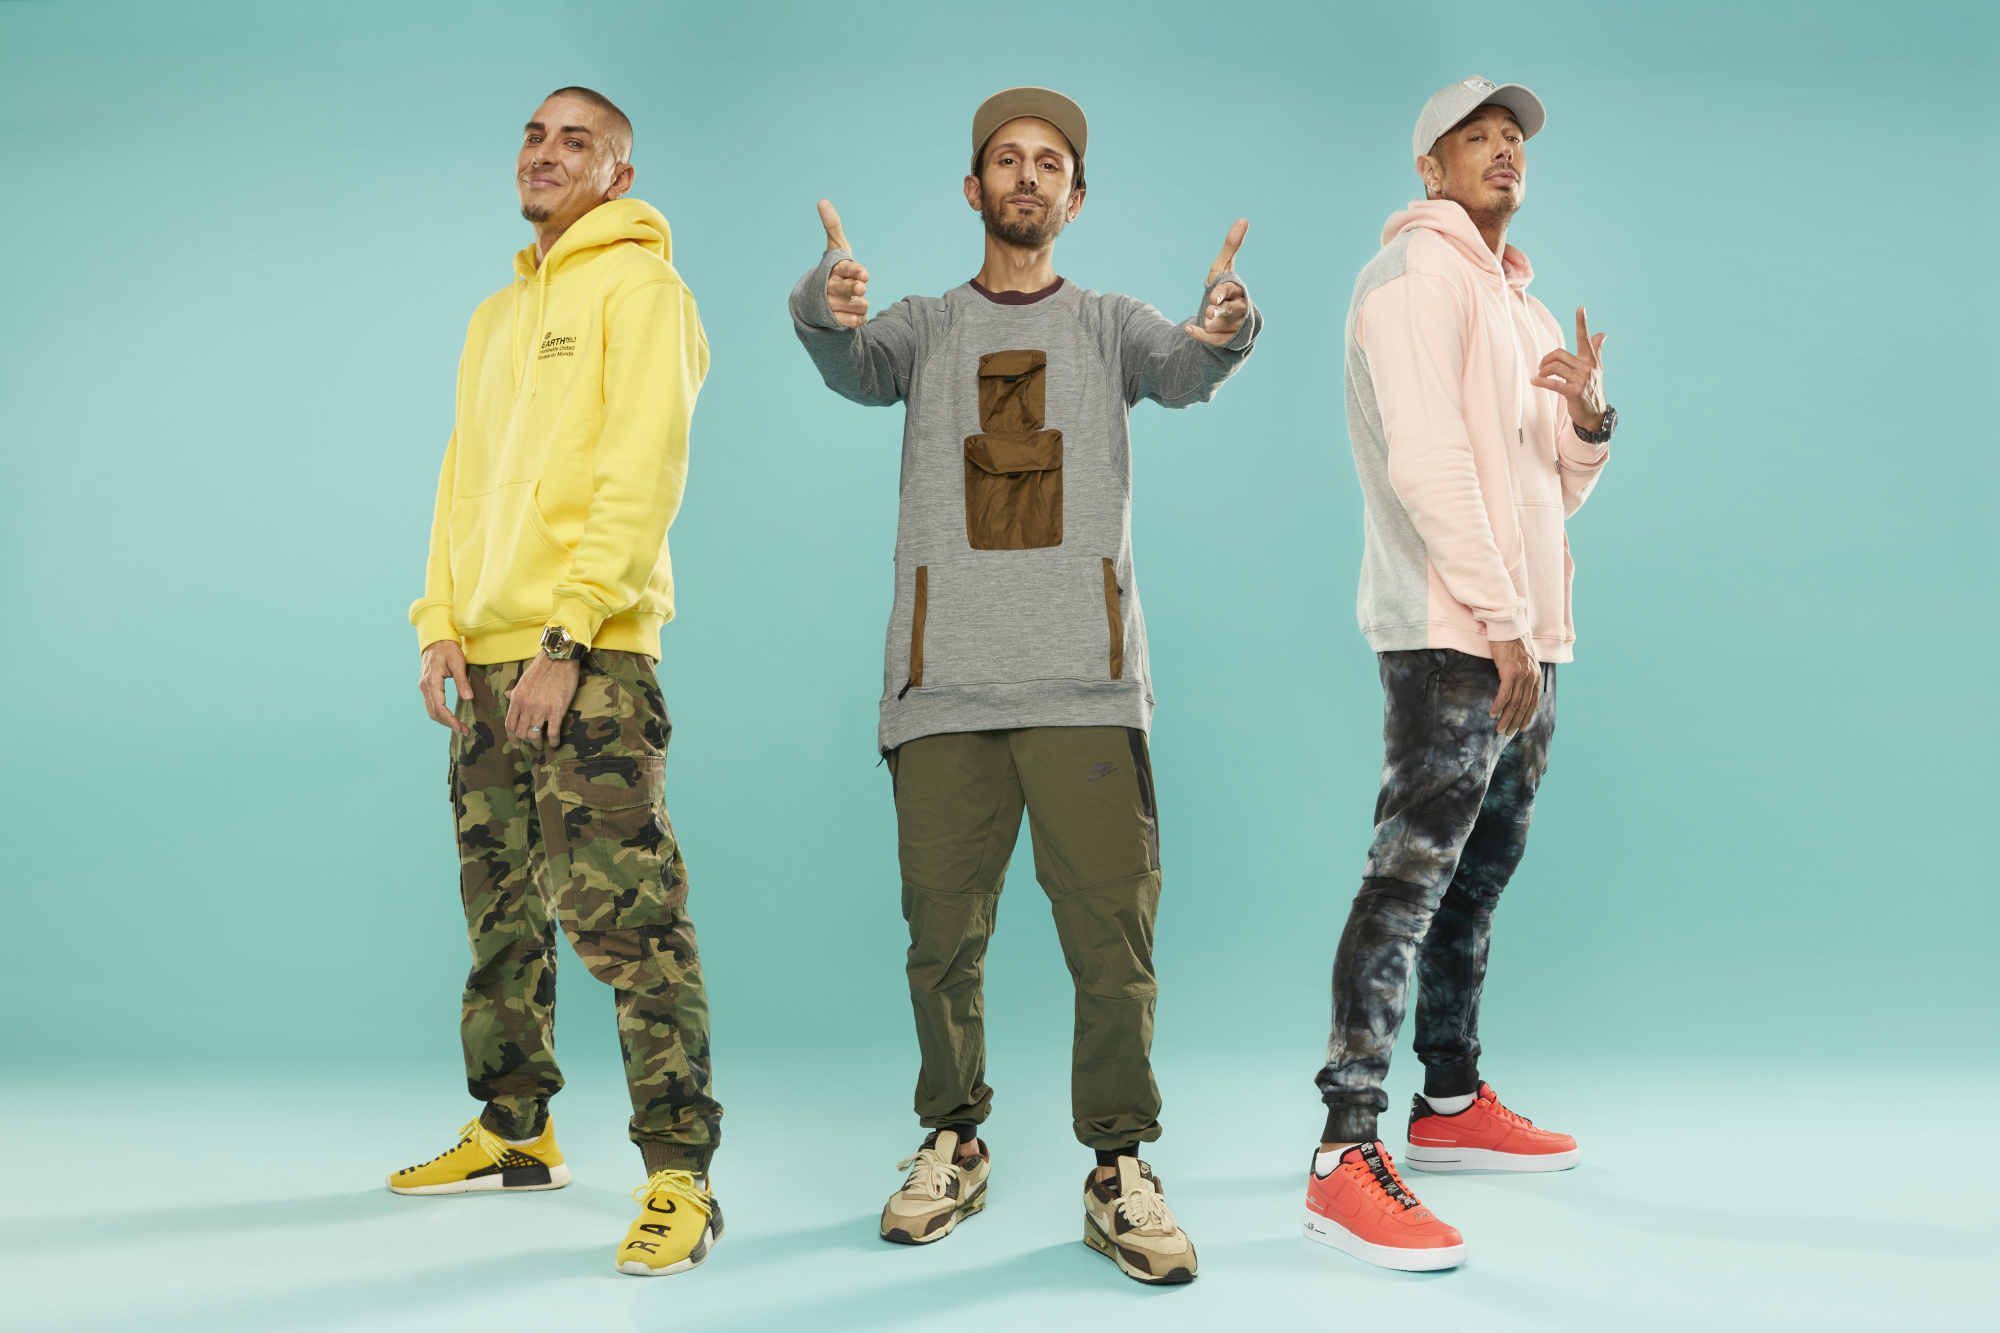 BLISS N ESO RELEASE TWO NEW TRACKS 'SO HAPPY (FEAT. SONREAL)' & 'SEND IT'